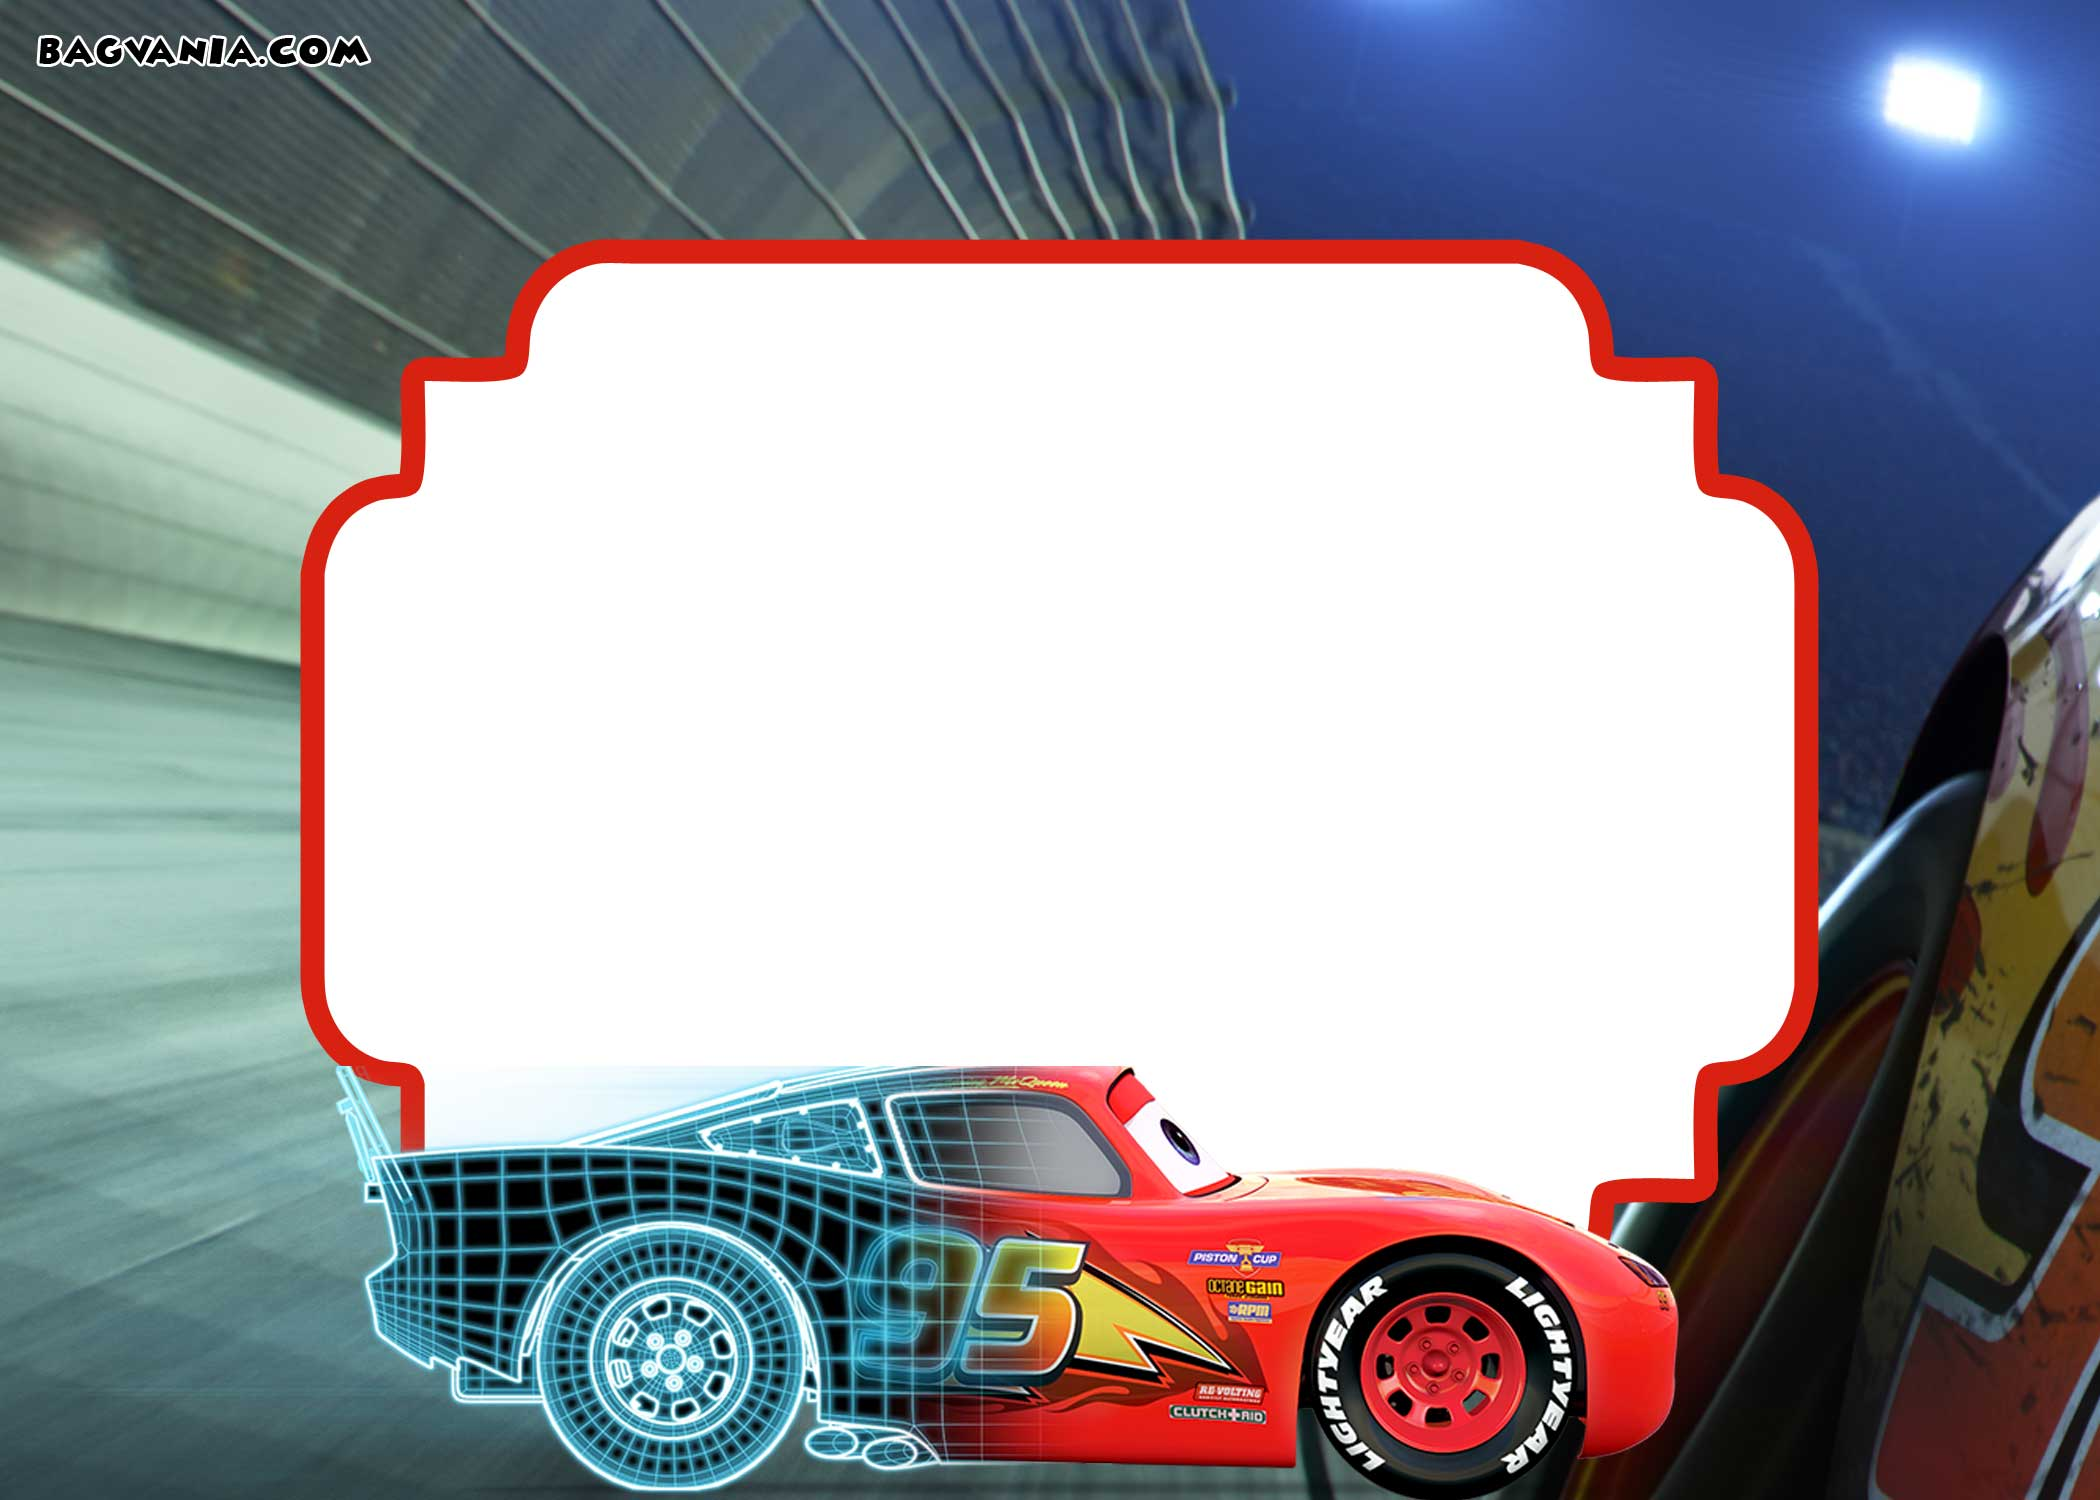 cars 3 invitation template  how to download it  u2013 bagvania